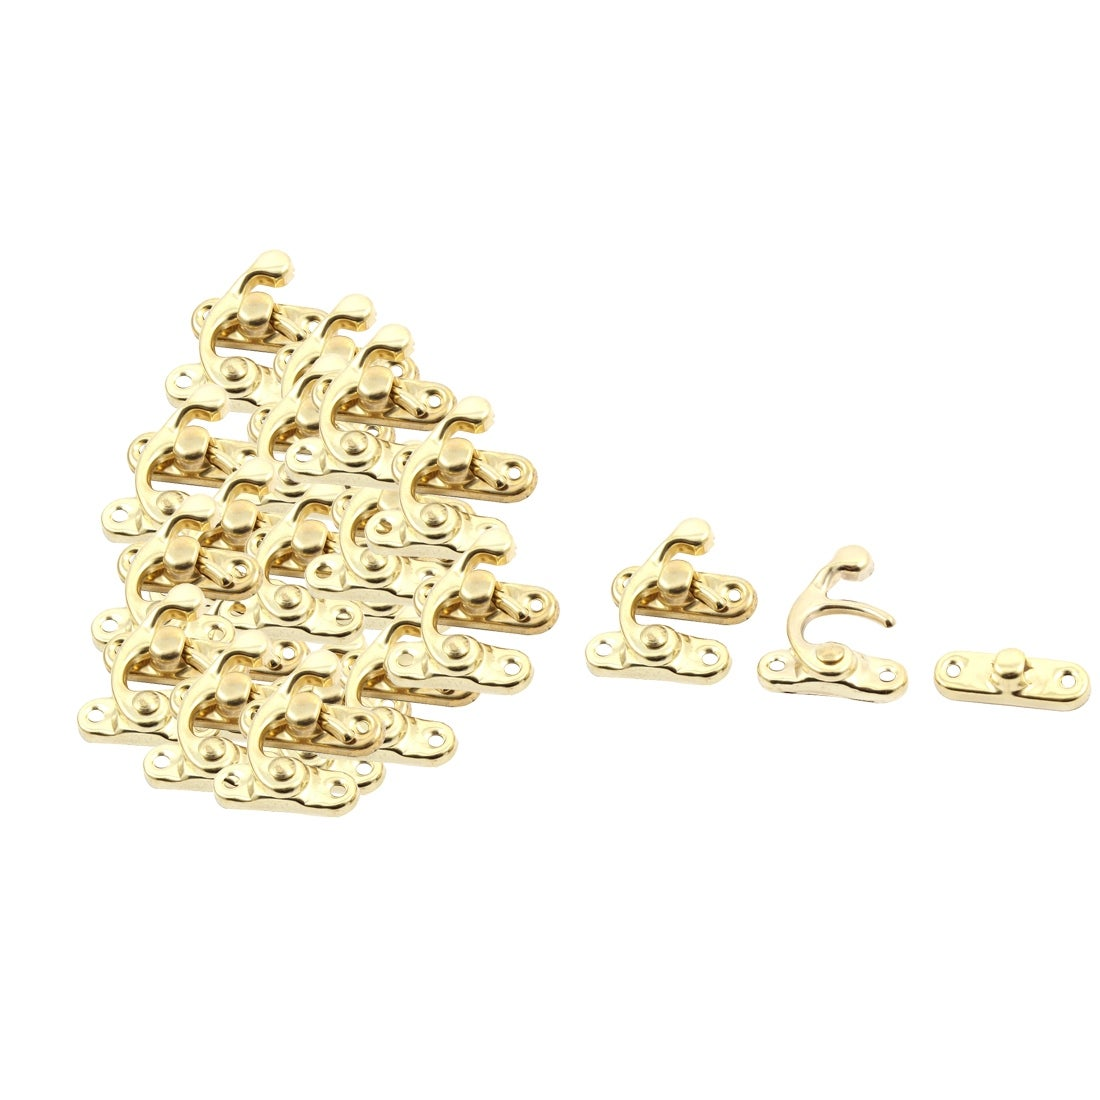 Picture of: Shop Black Friday Deals On Decorative Jewelry Wine Wooden Box Hasp Latch Hook Gold Tone 20 Sets Gold Tone 1 1 X 0 9 L W On Sale Overstock 28855194